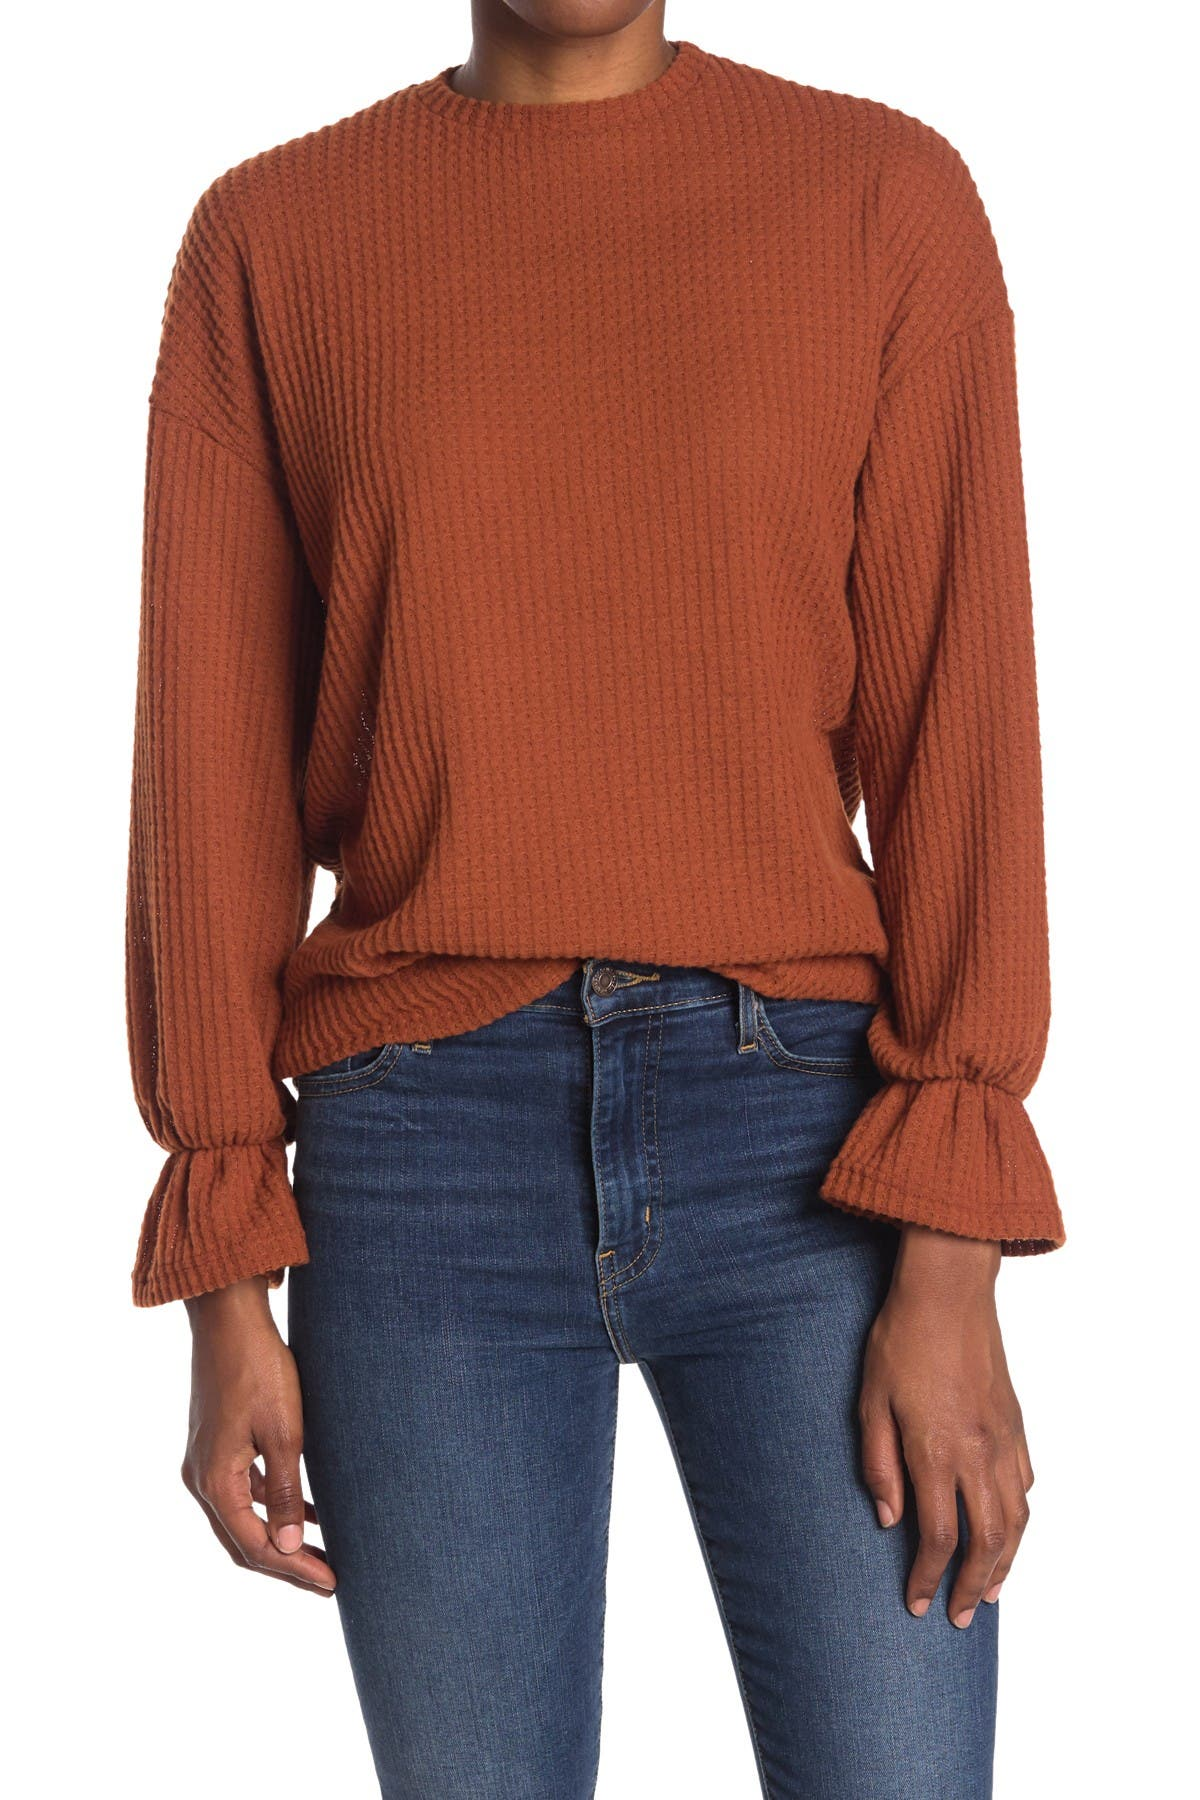 Image of Velvet Torch Waffle Knit Bell Cuff Sweater